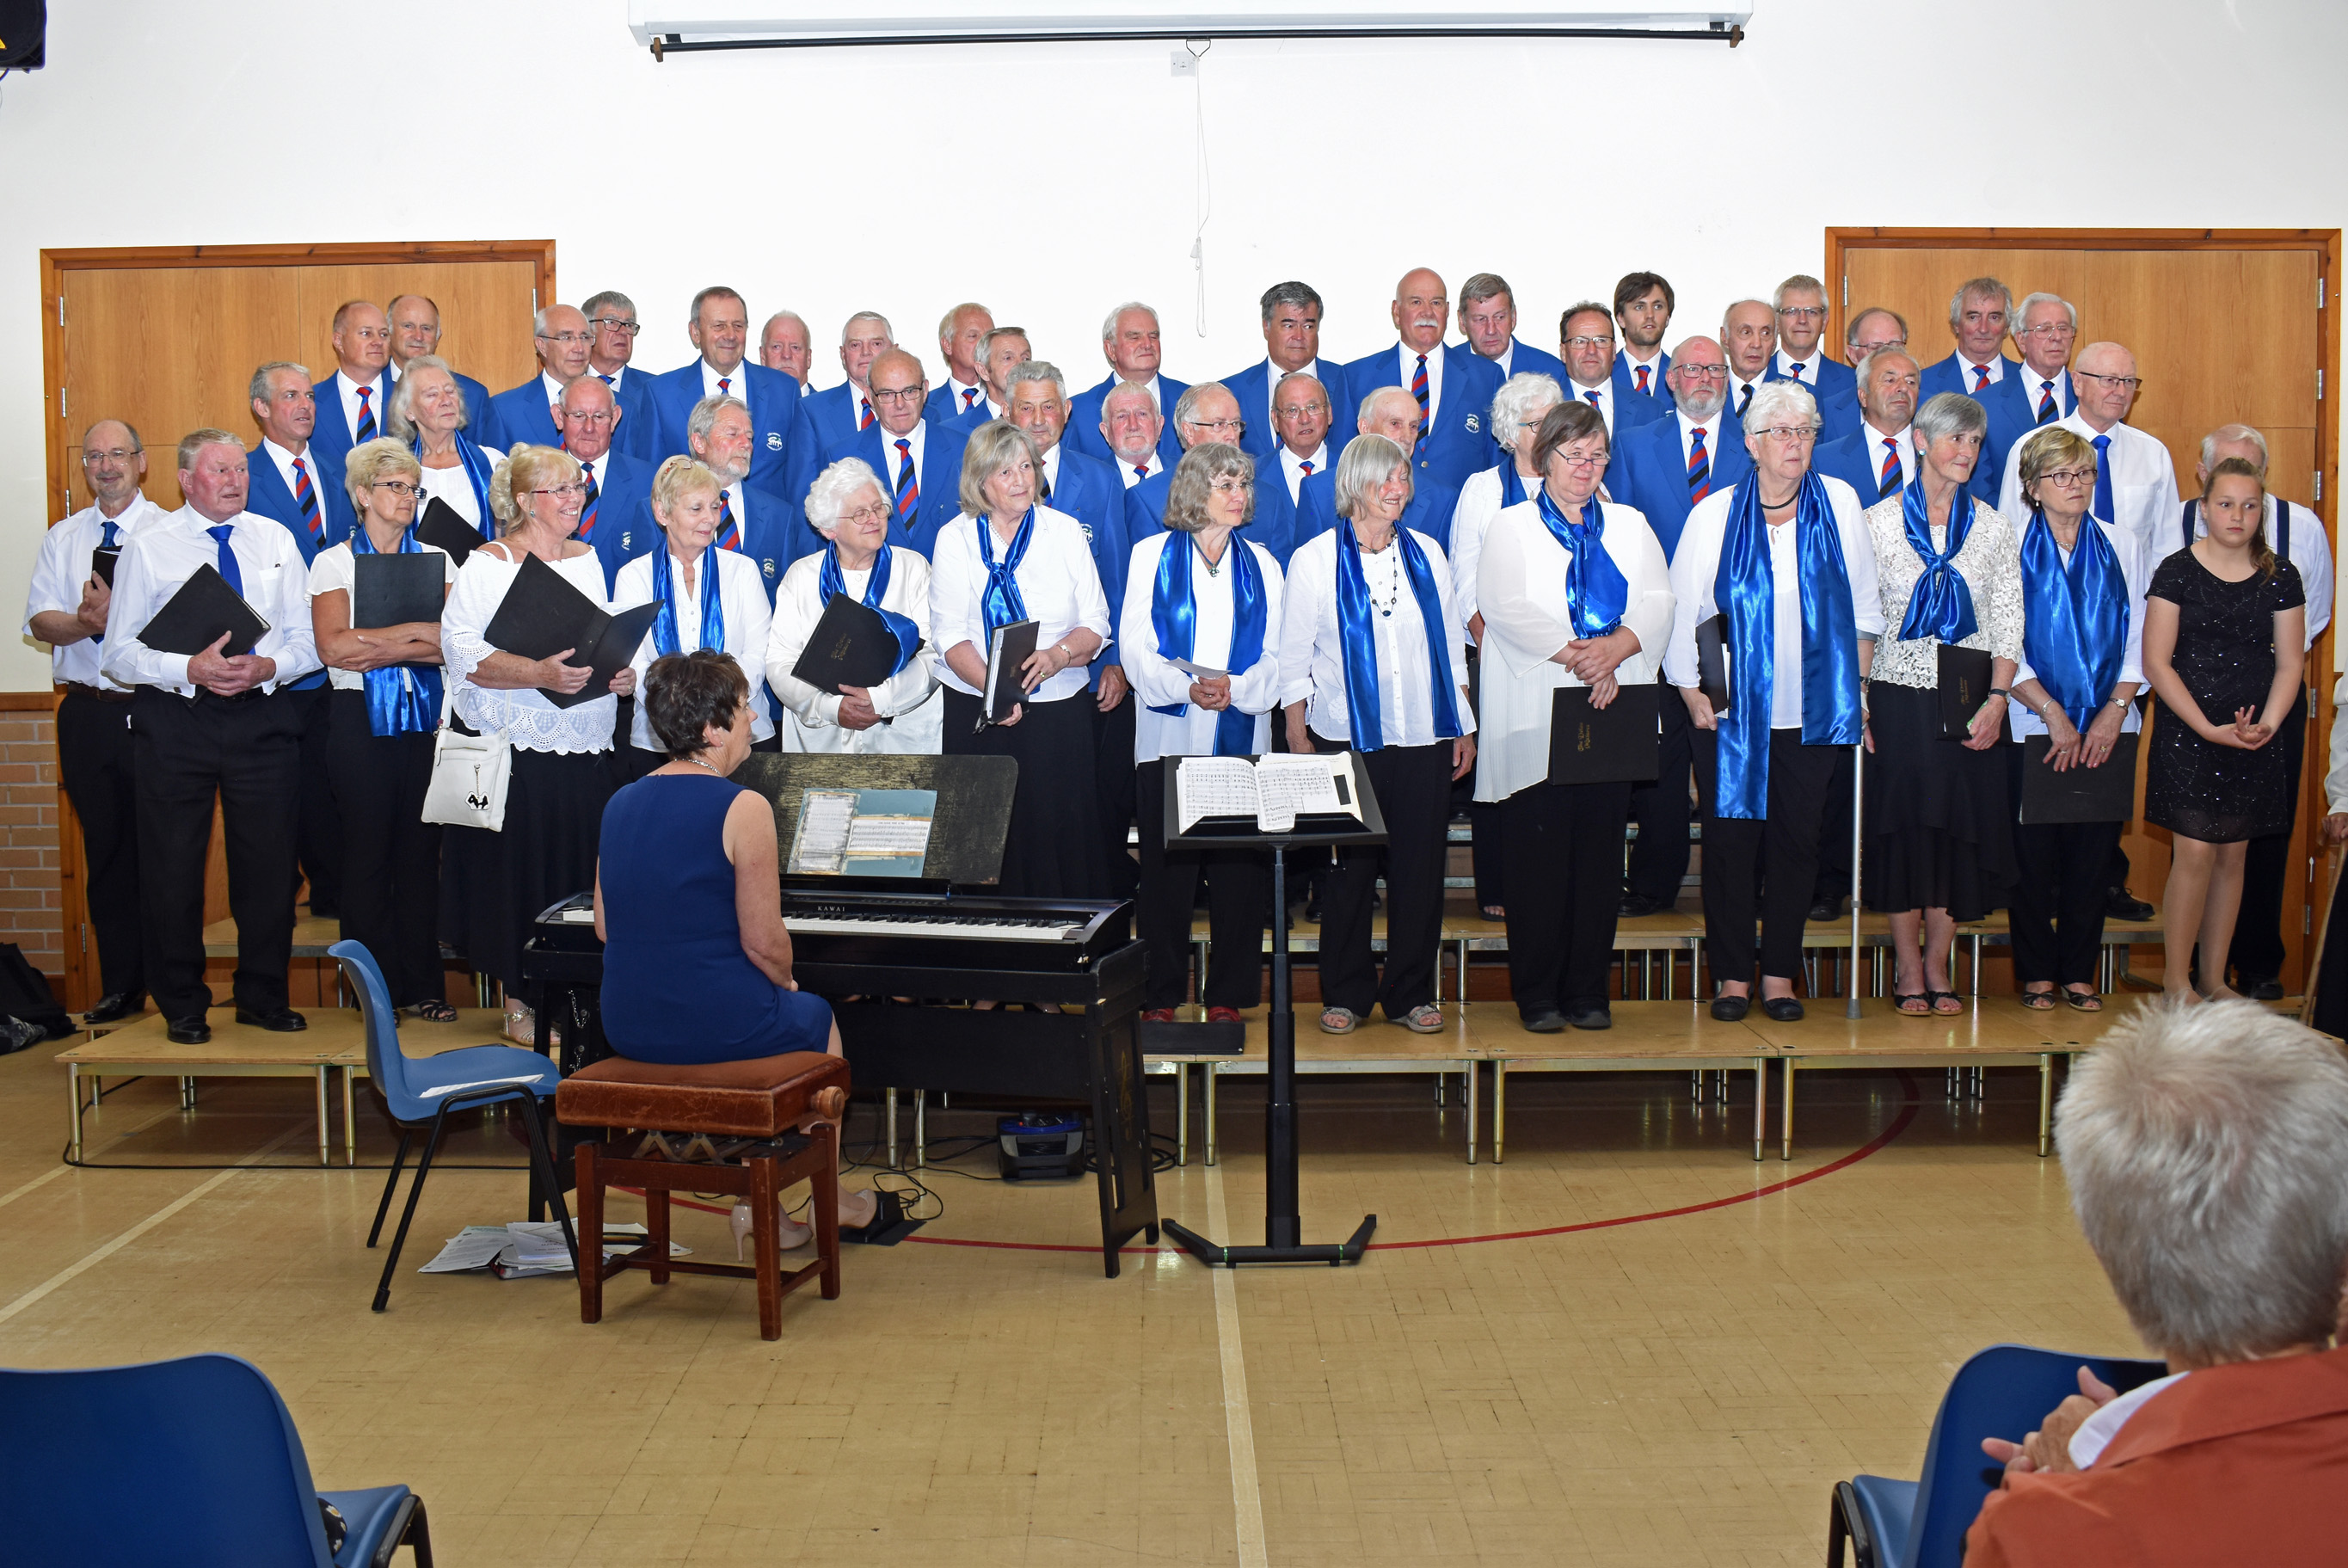 News | Builth Male Voice Choir - Côr Meibion Llanfair-ym-Muallt